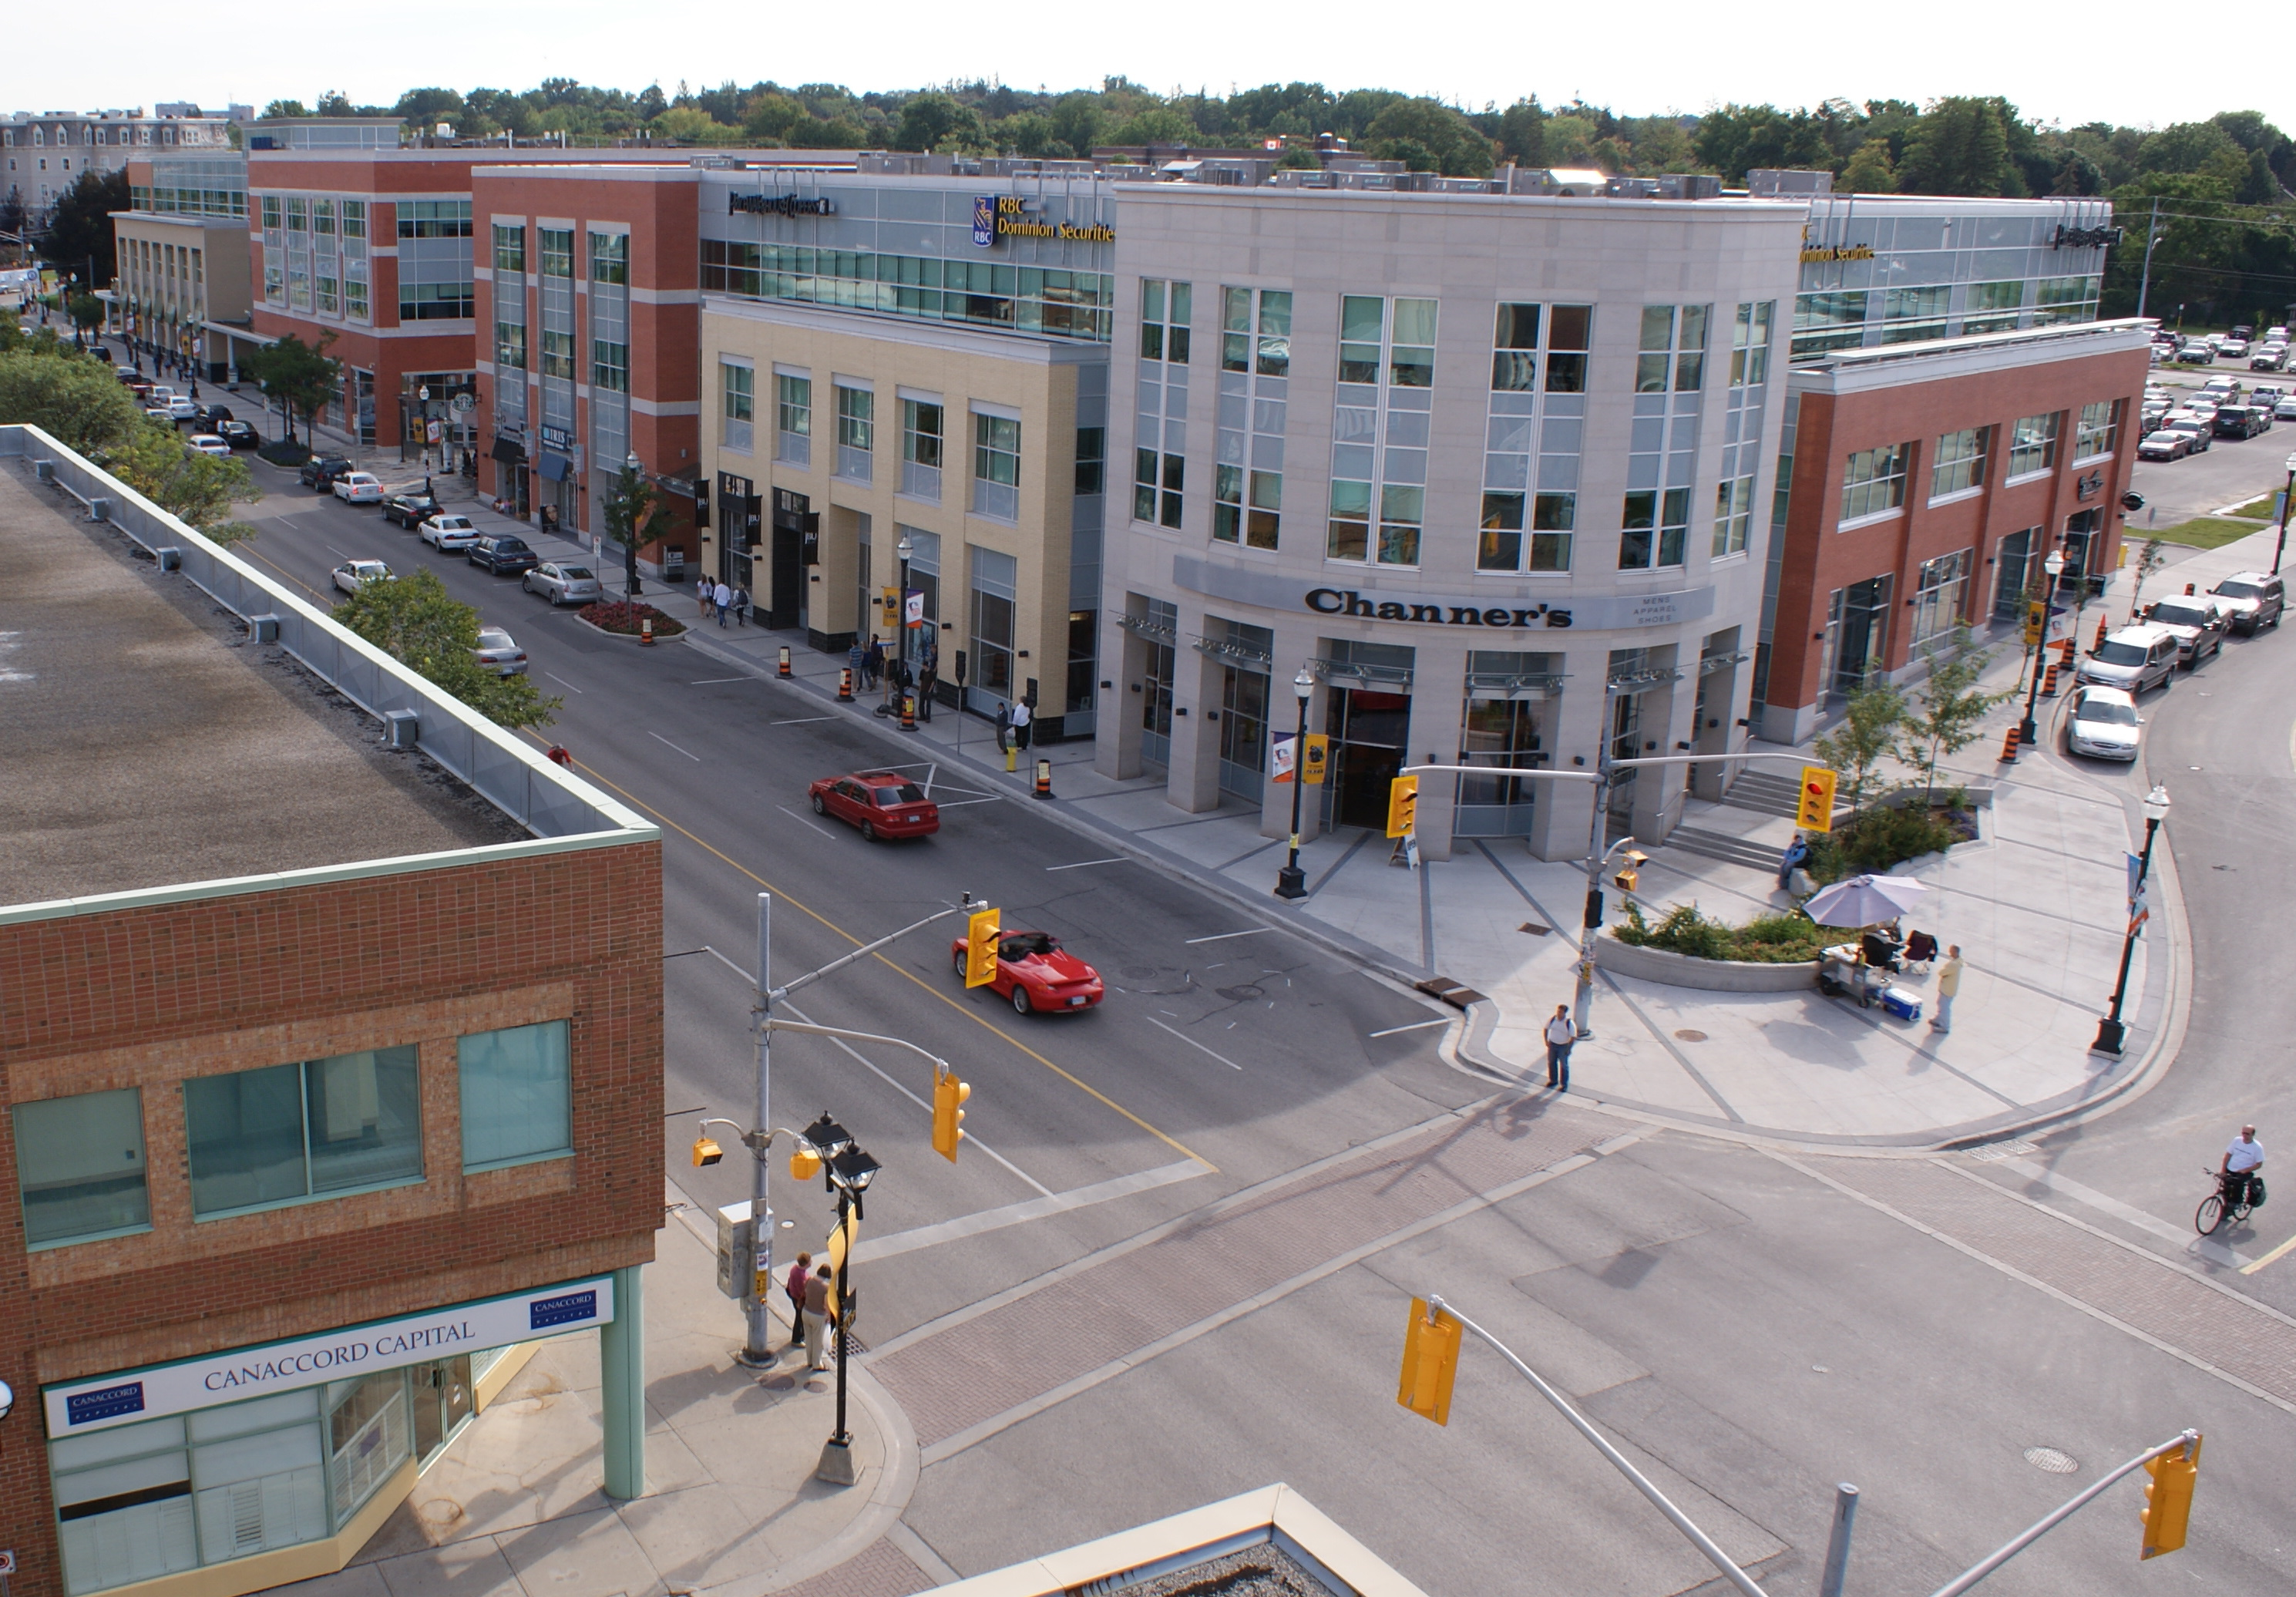 Uptown Waterloo, looking south down King Street.